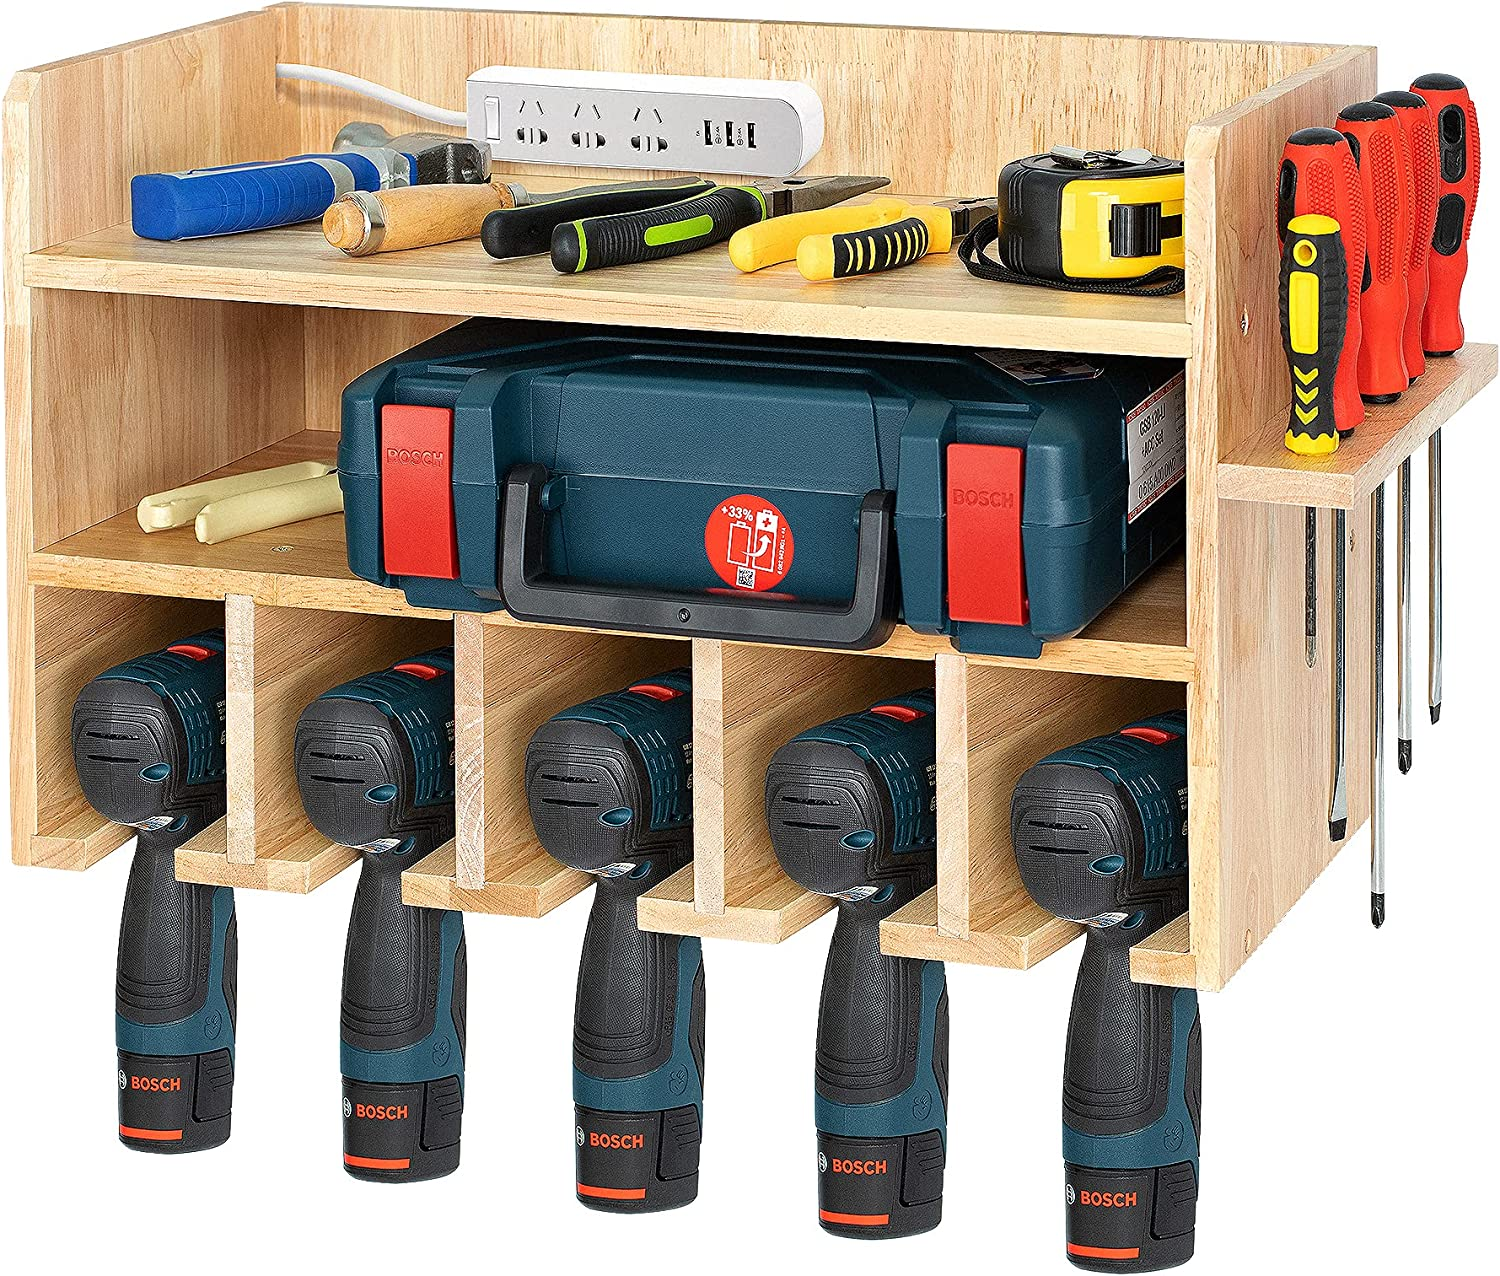 T-SIGN Power Tool Storage Organizer M ご予約品 Drill 人気急上昇 Natural Wall Holder